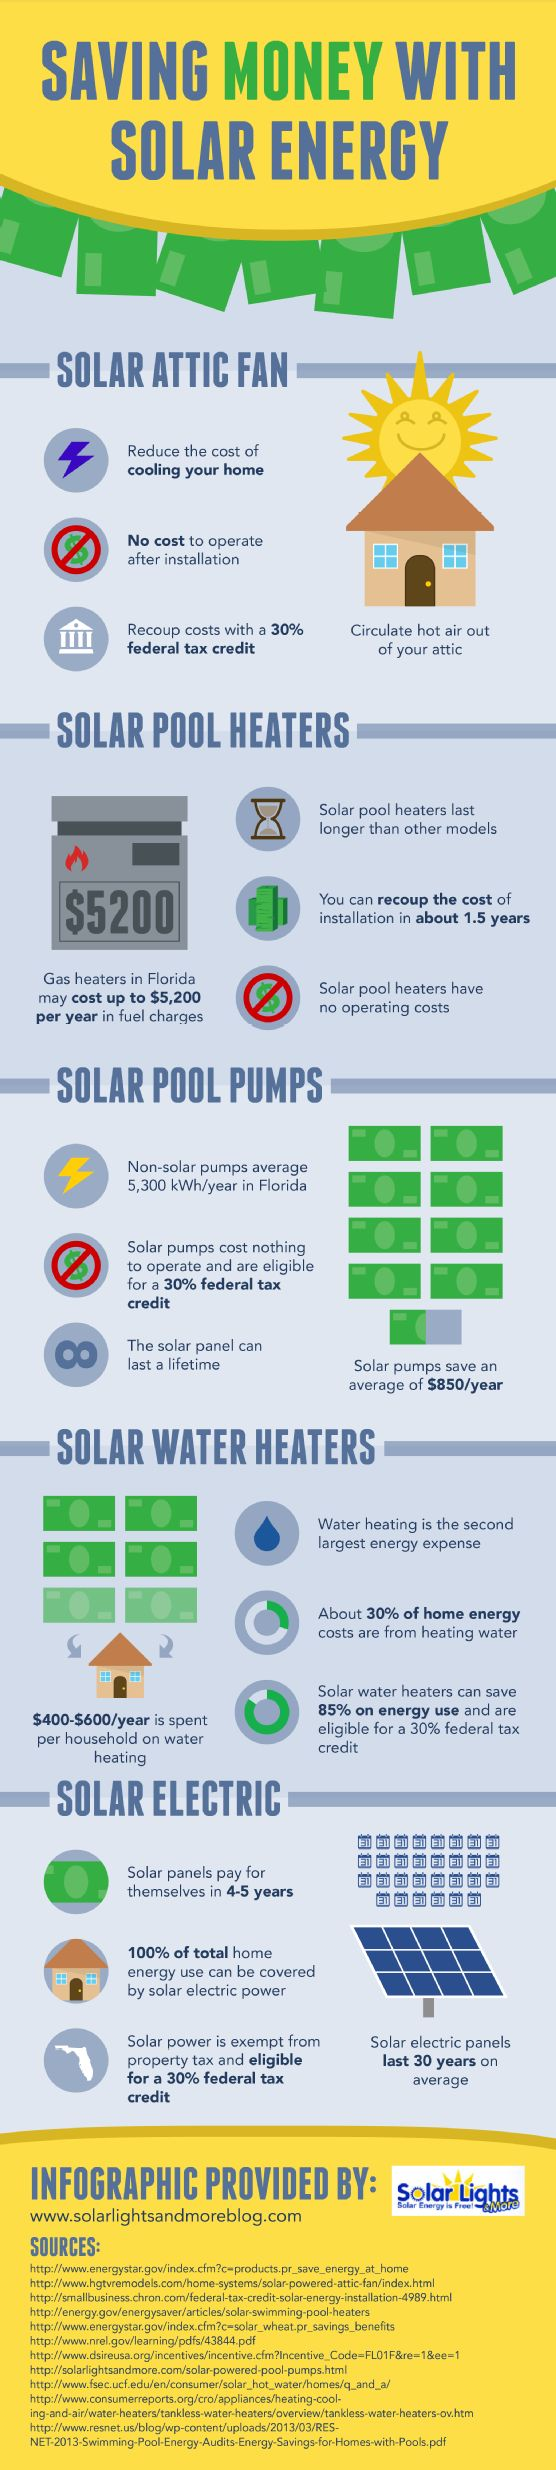 A solar pool pump costs nothing to operate and can make a homeowner eligible for a 30% tax credit. The solar panel can also last a lifetime.  | TorchEnergy.com #TorchEnergy